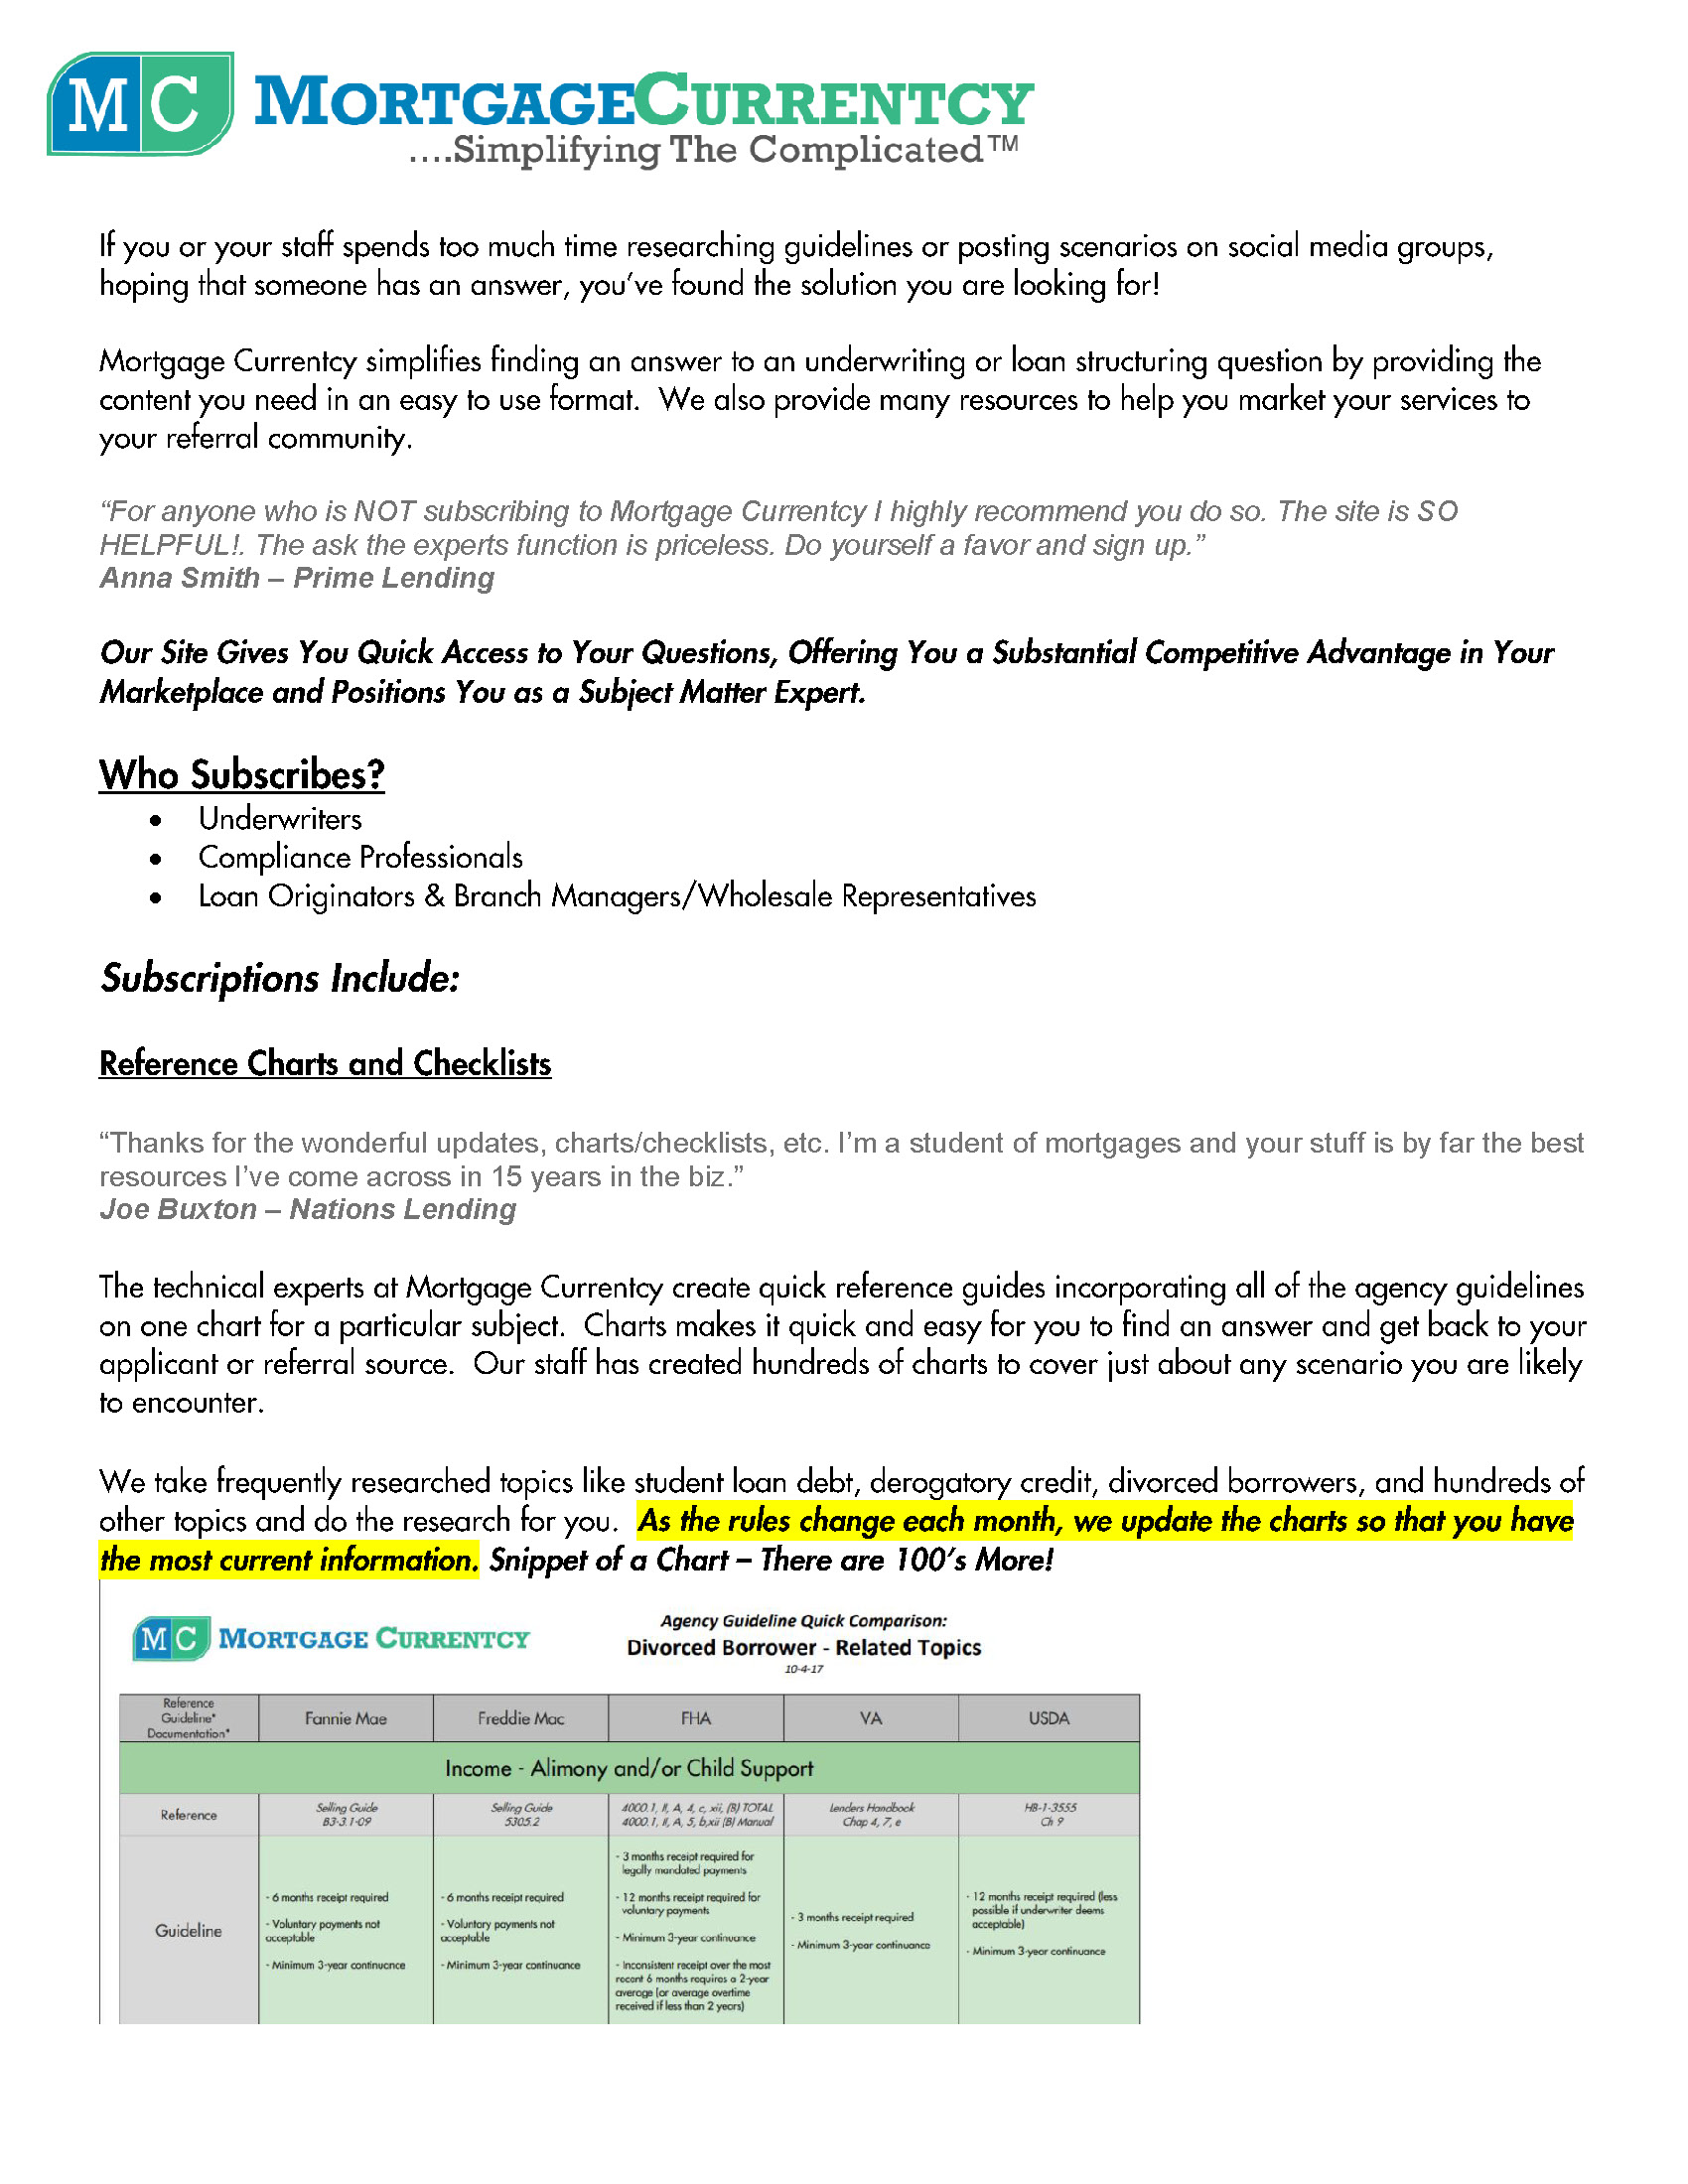 Mortgage Currentcy Overview Page 1